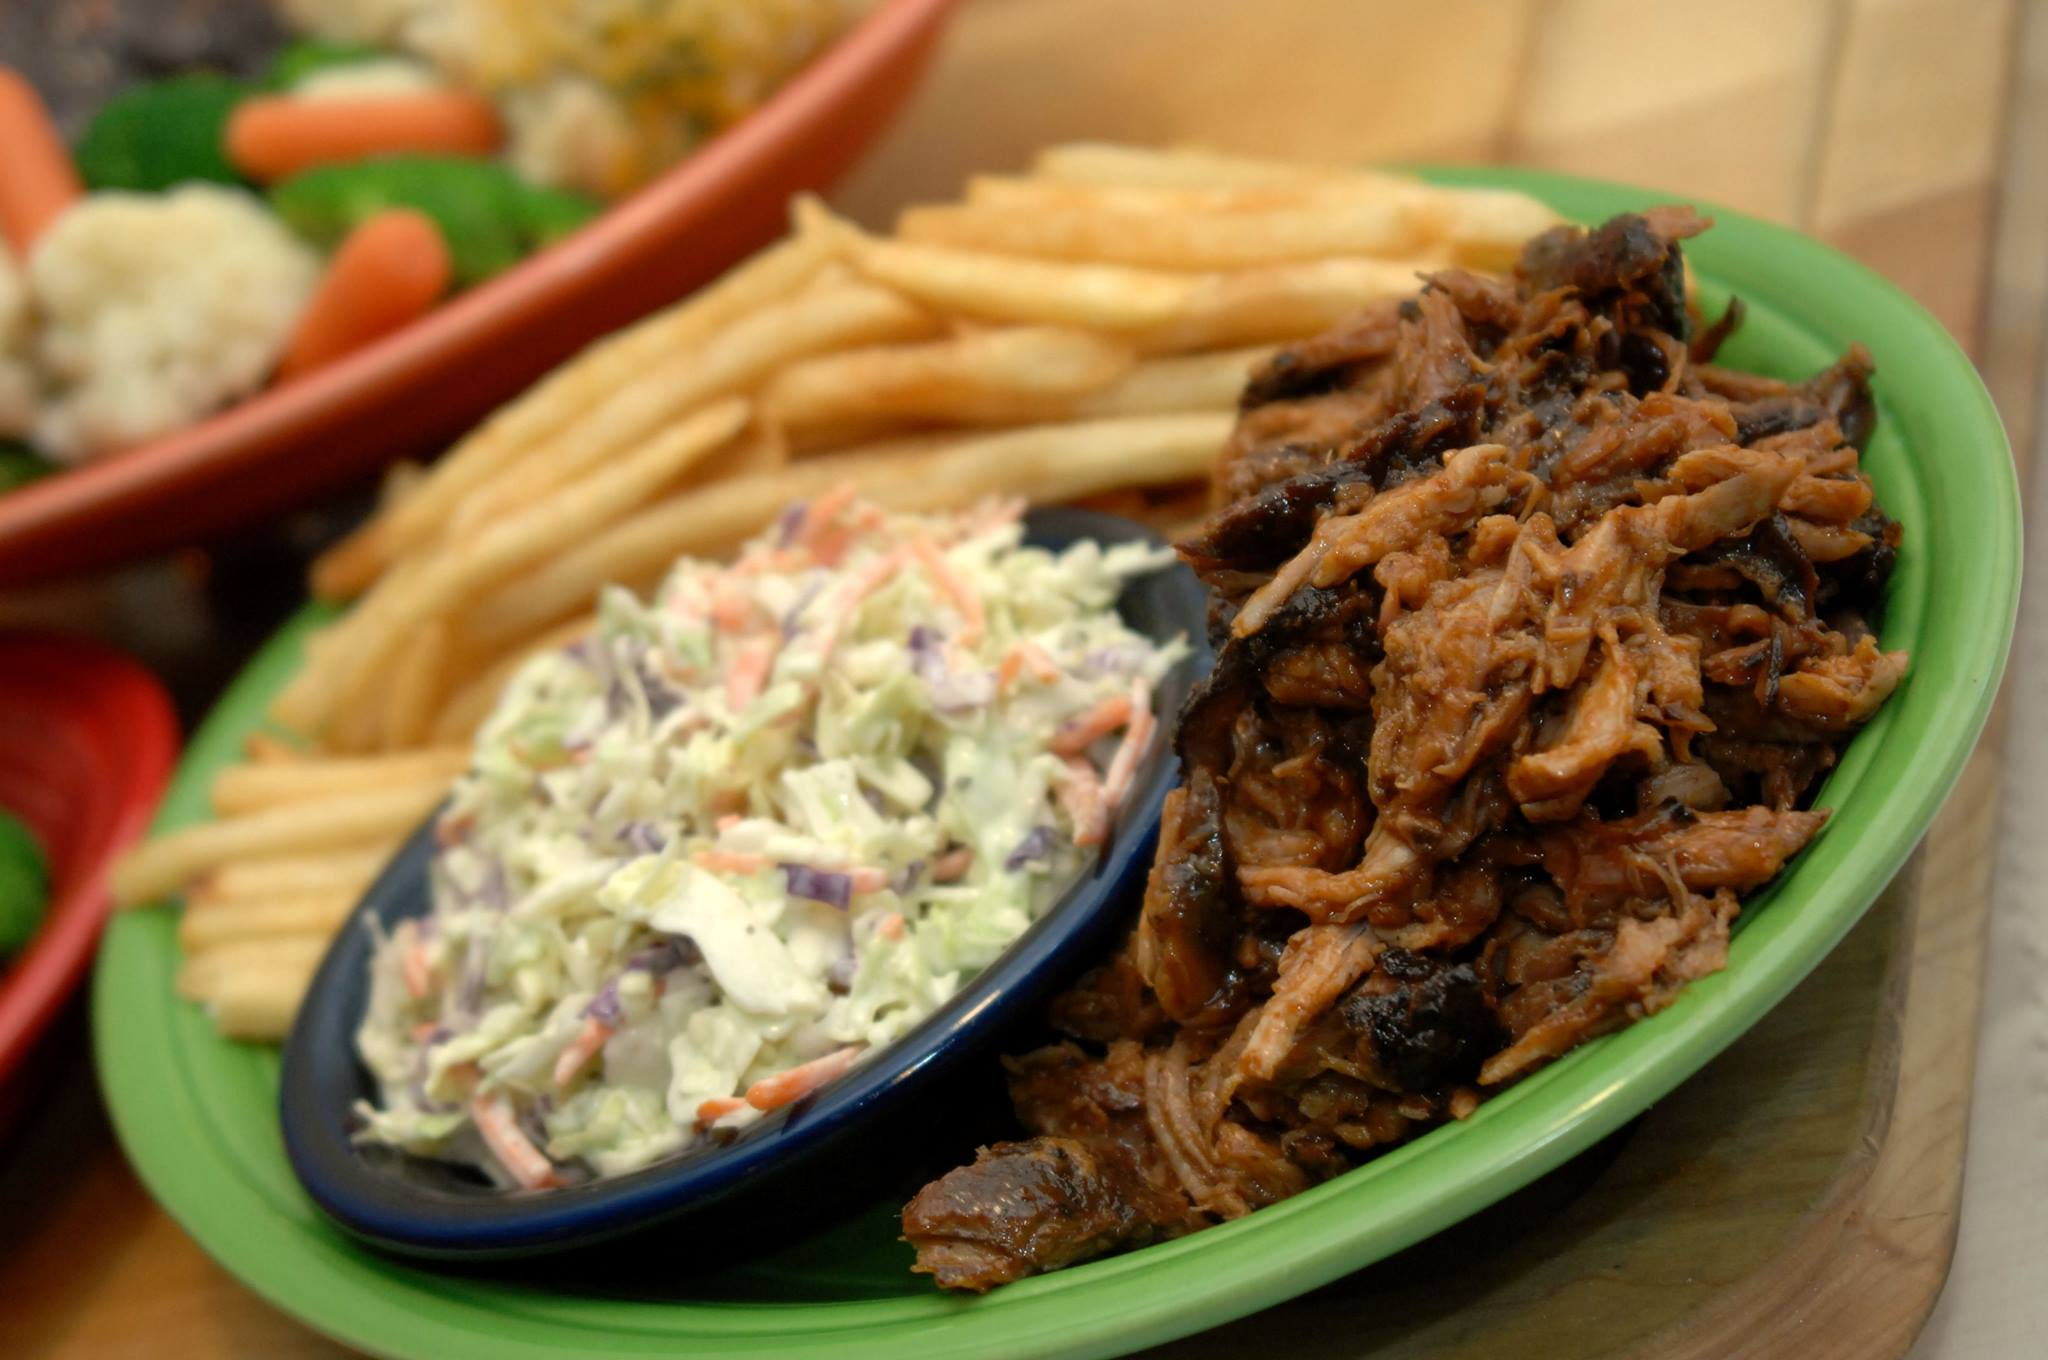 Pulled pork combo plate with coleslaw and French fries